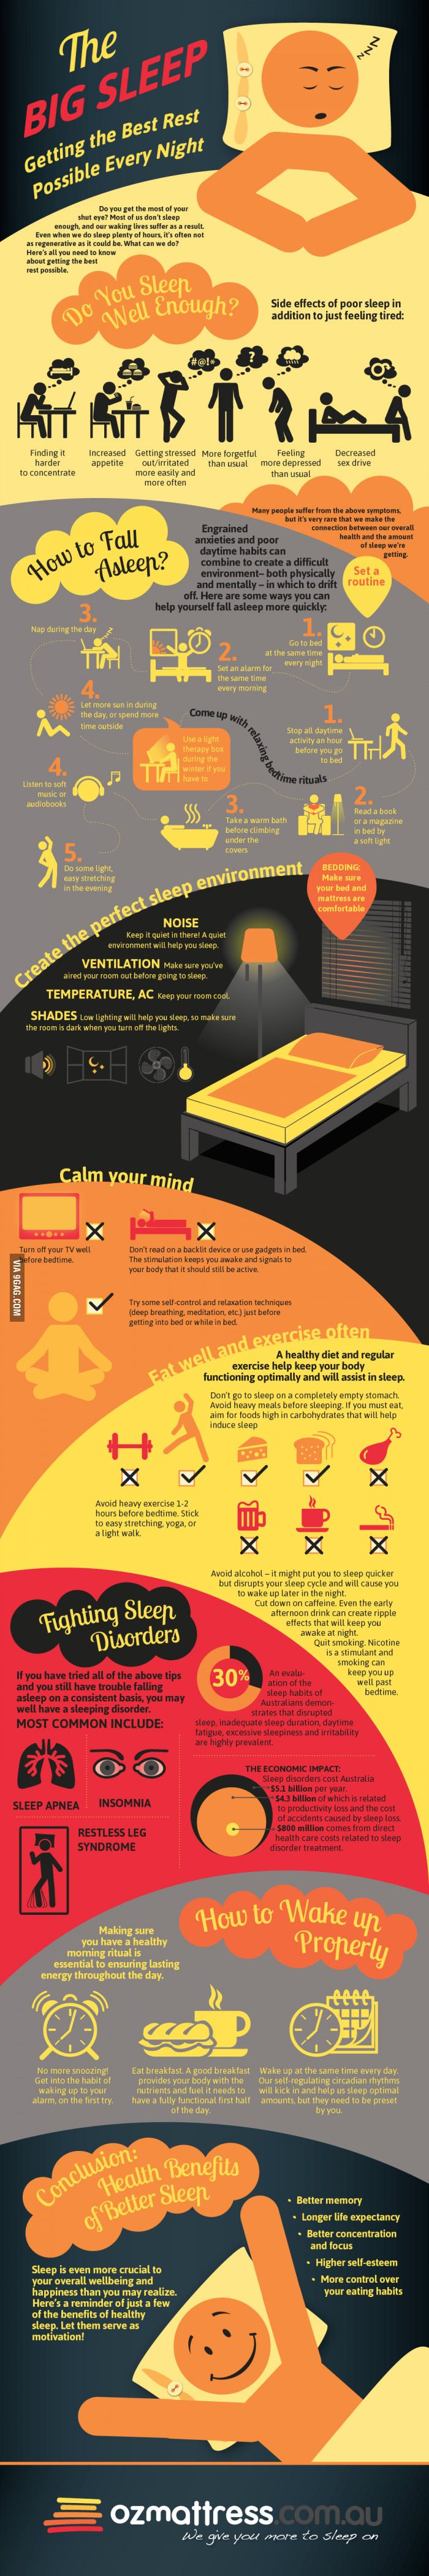 An Infographic To Help You Get The Best Sleep!